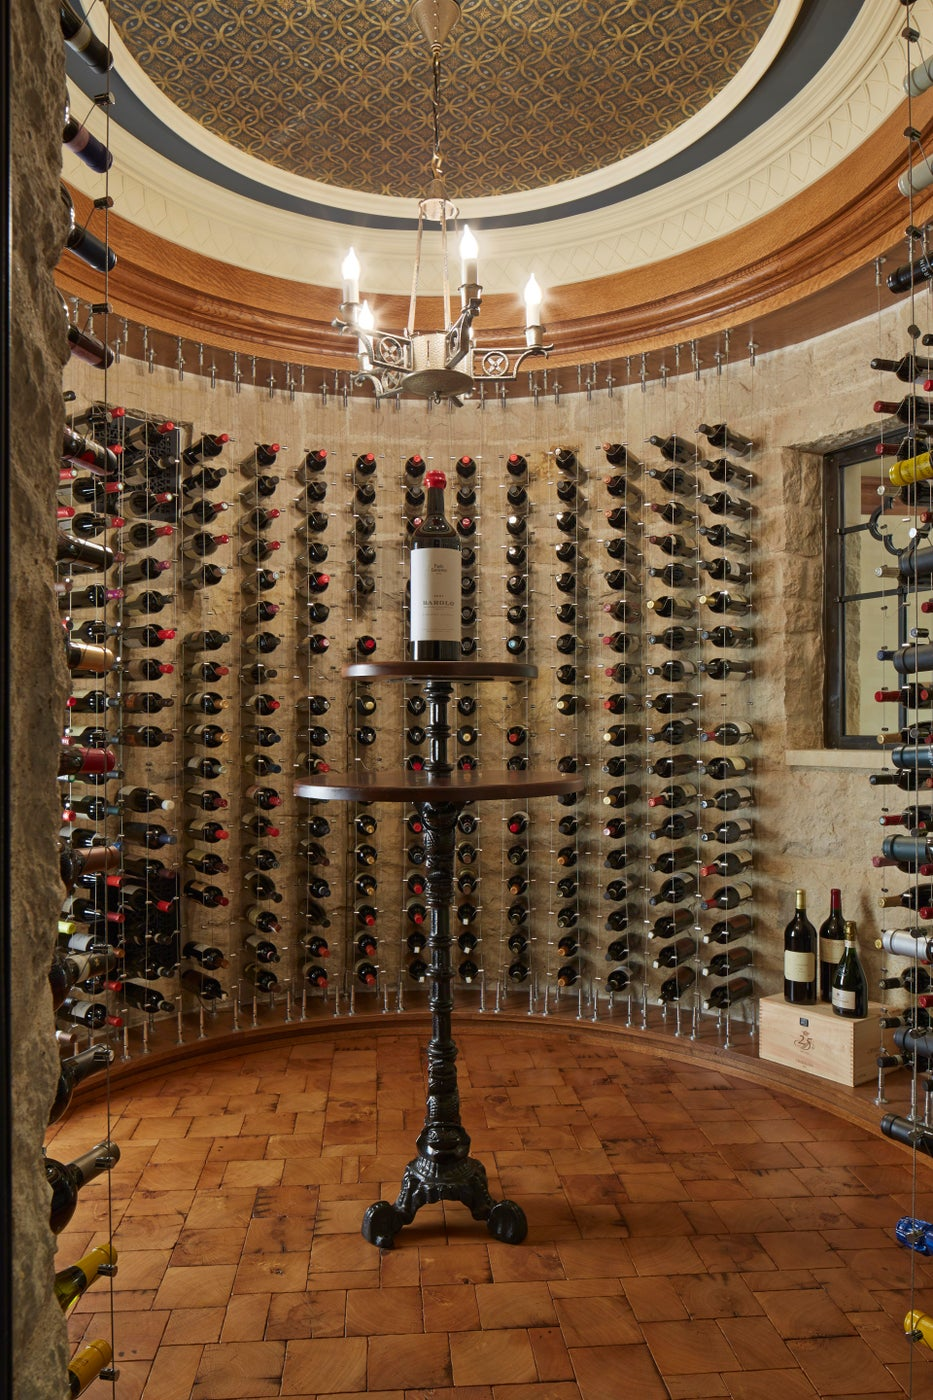 Cable Wine Racks Exposing Stone Walls in Spherical Wine Cellar - Minnesota